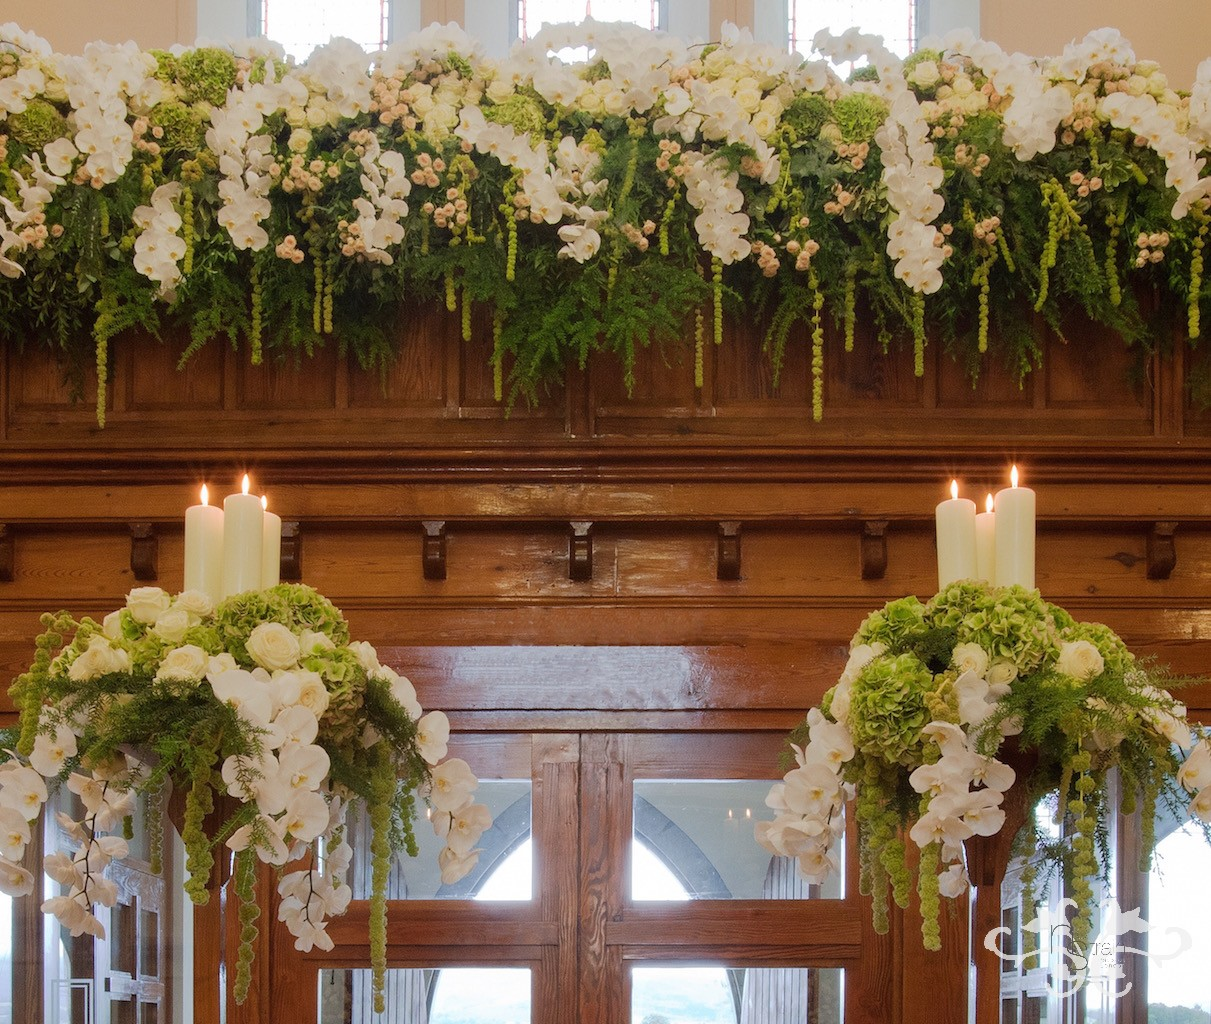 The lavish floral feature on the balcony continues to bring one's eye up towards the high ceiling, accentuating the elegance of the church.